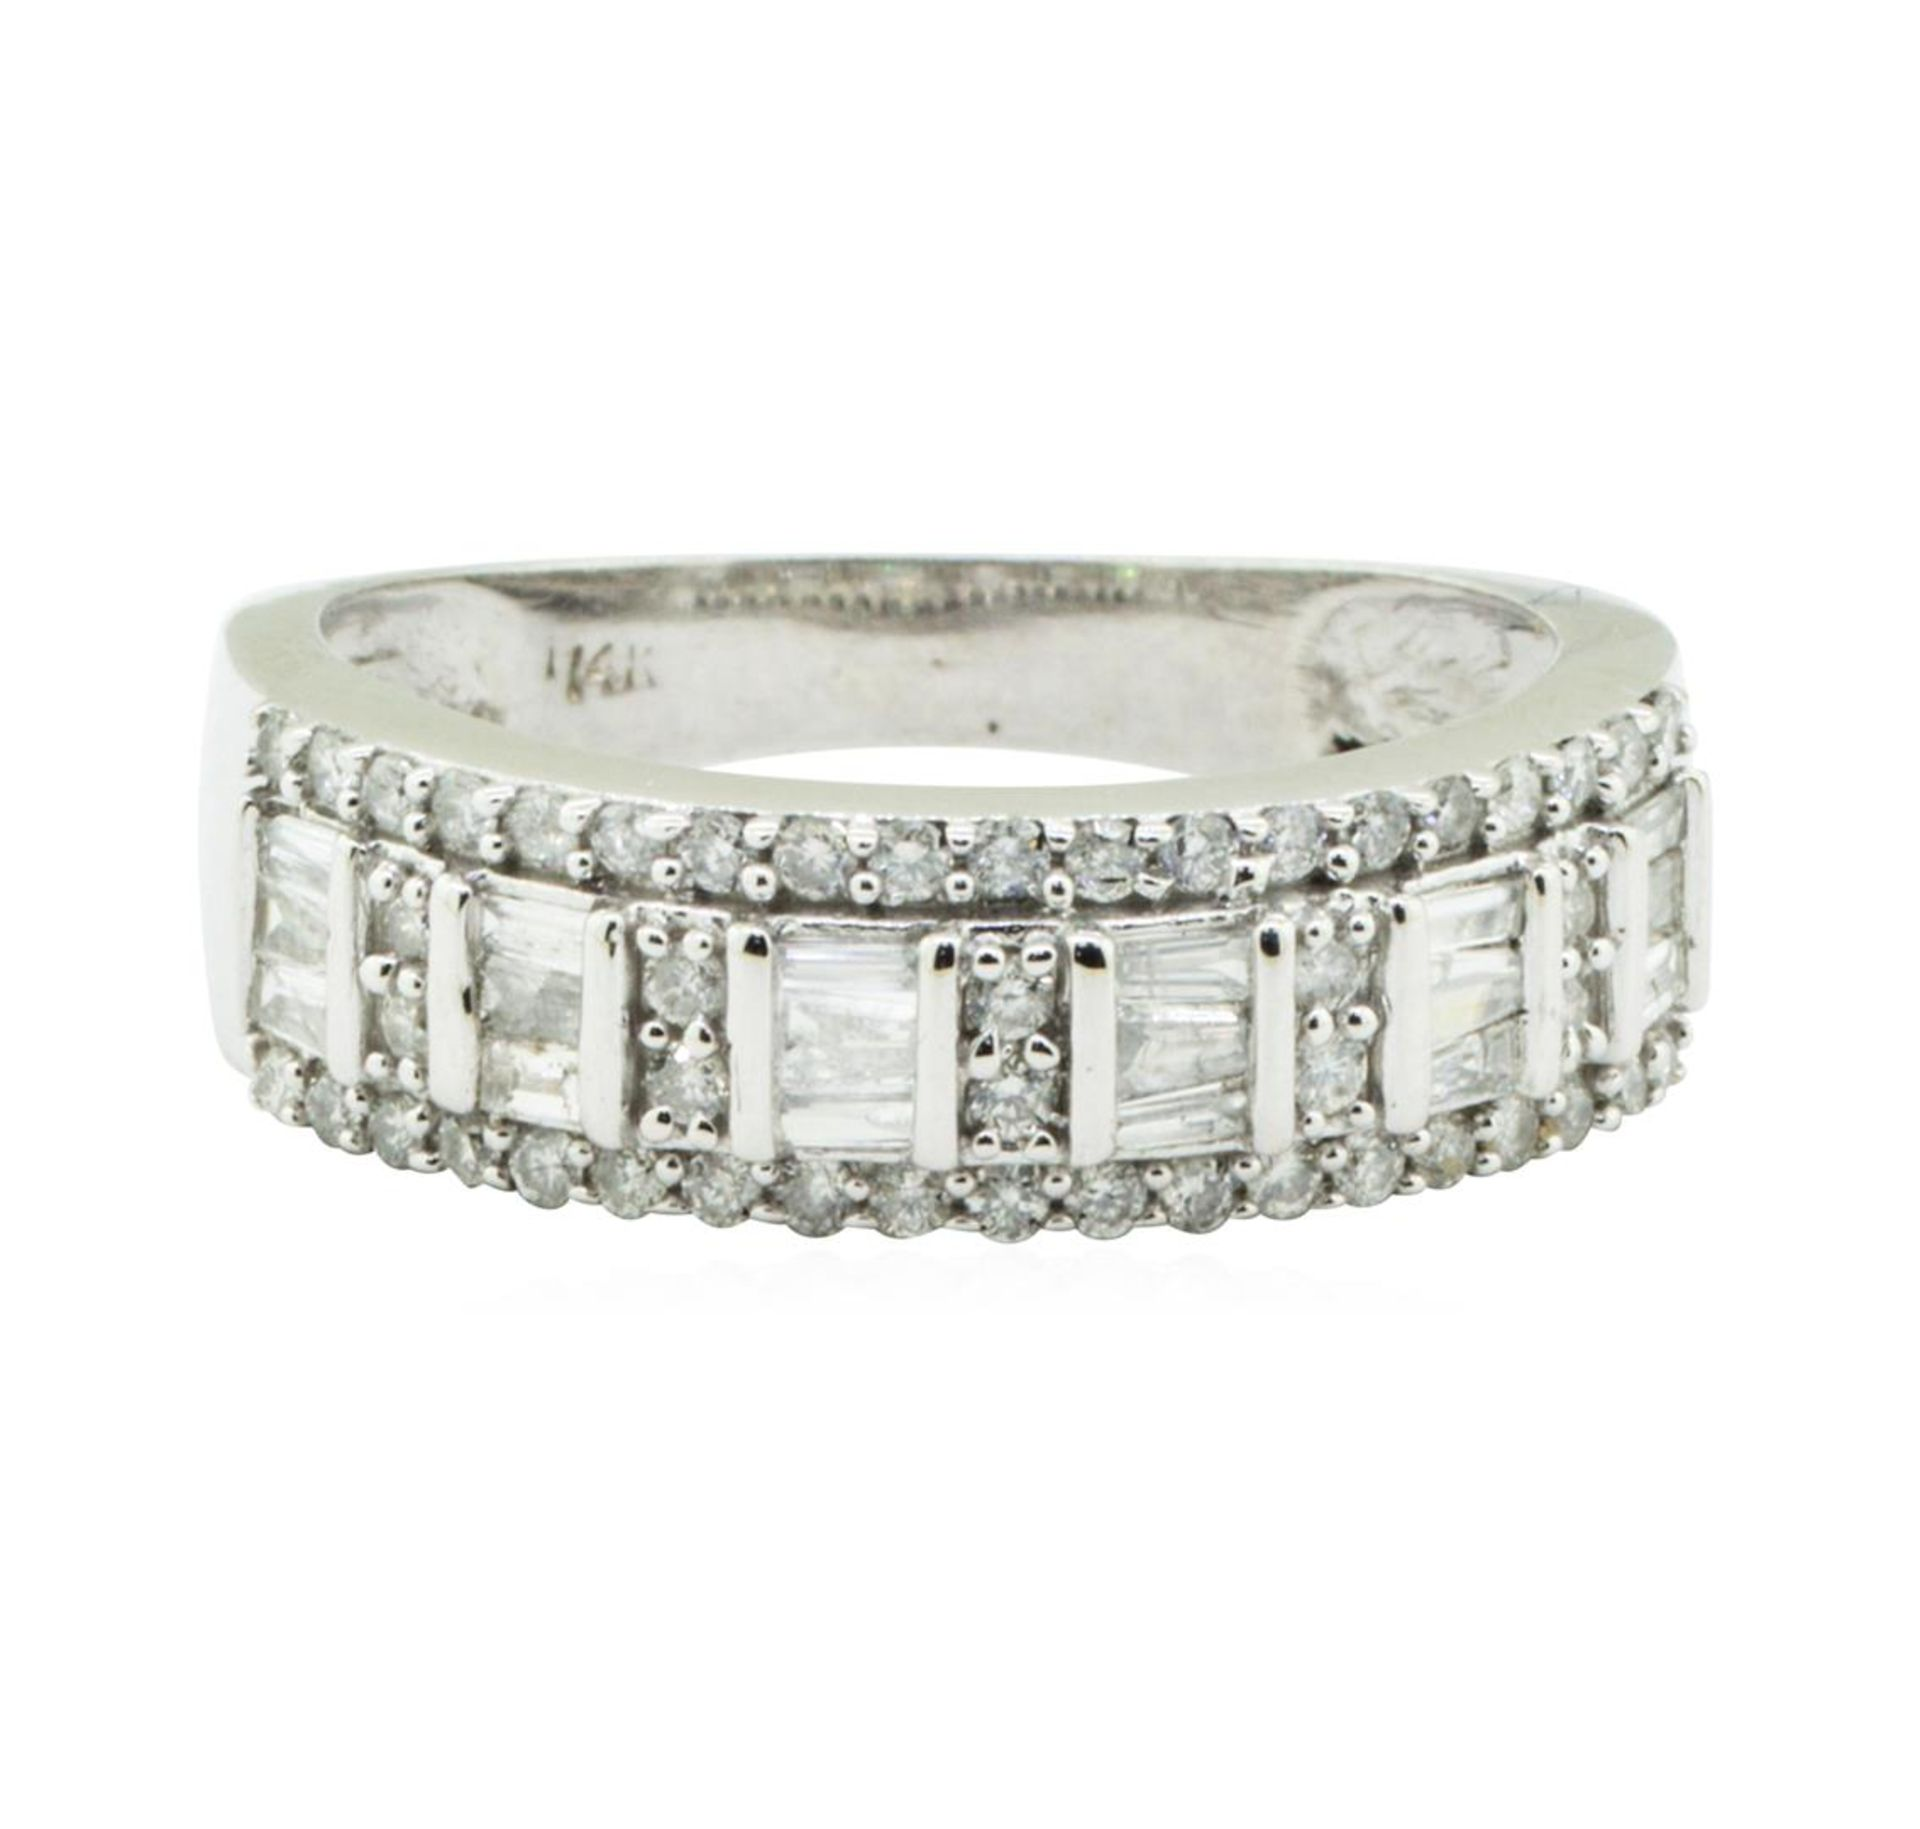 1.00 ctw Diamond Ring - 14KT White Gold - Image 2 of 4